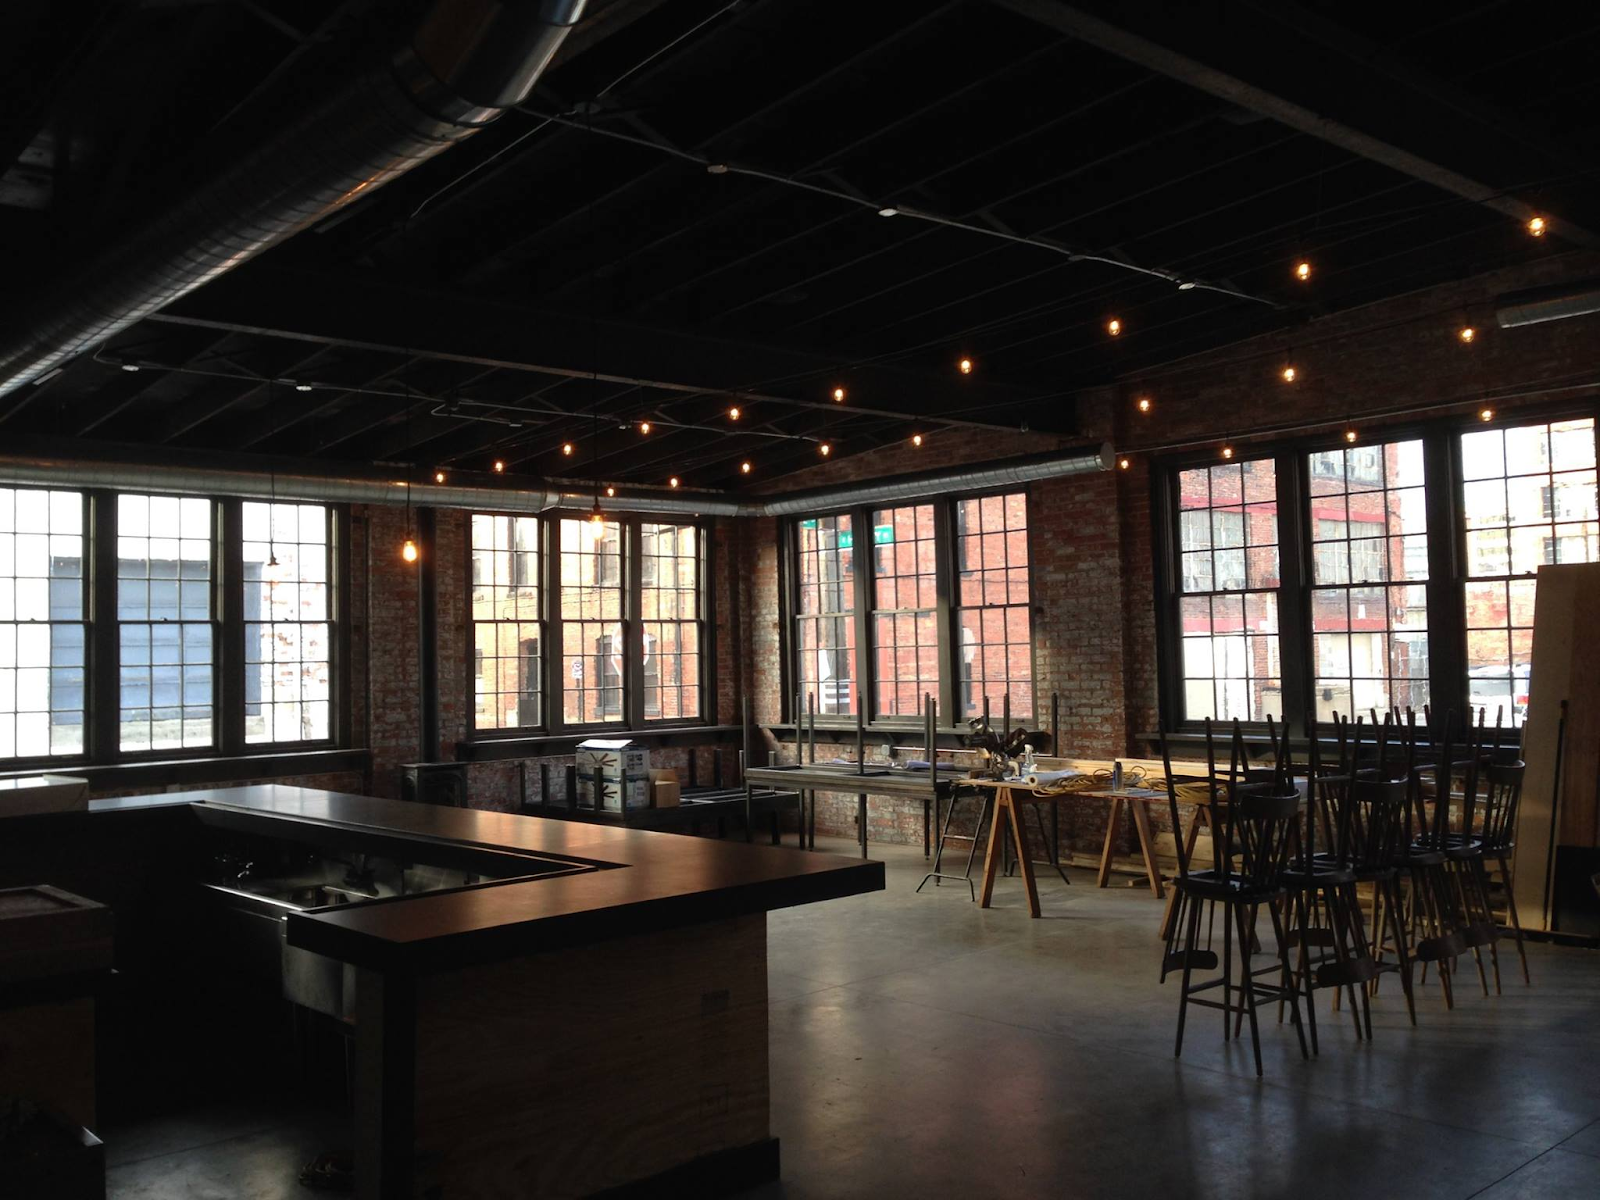 Wolf's Ridge Brewing taproom after patrons have left